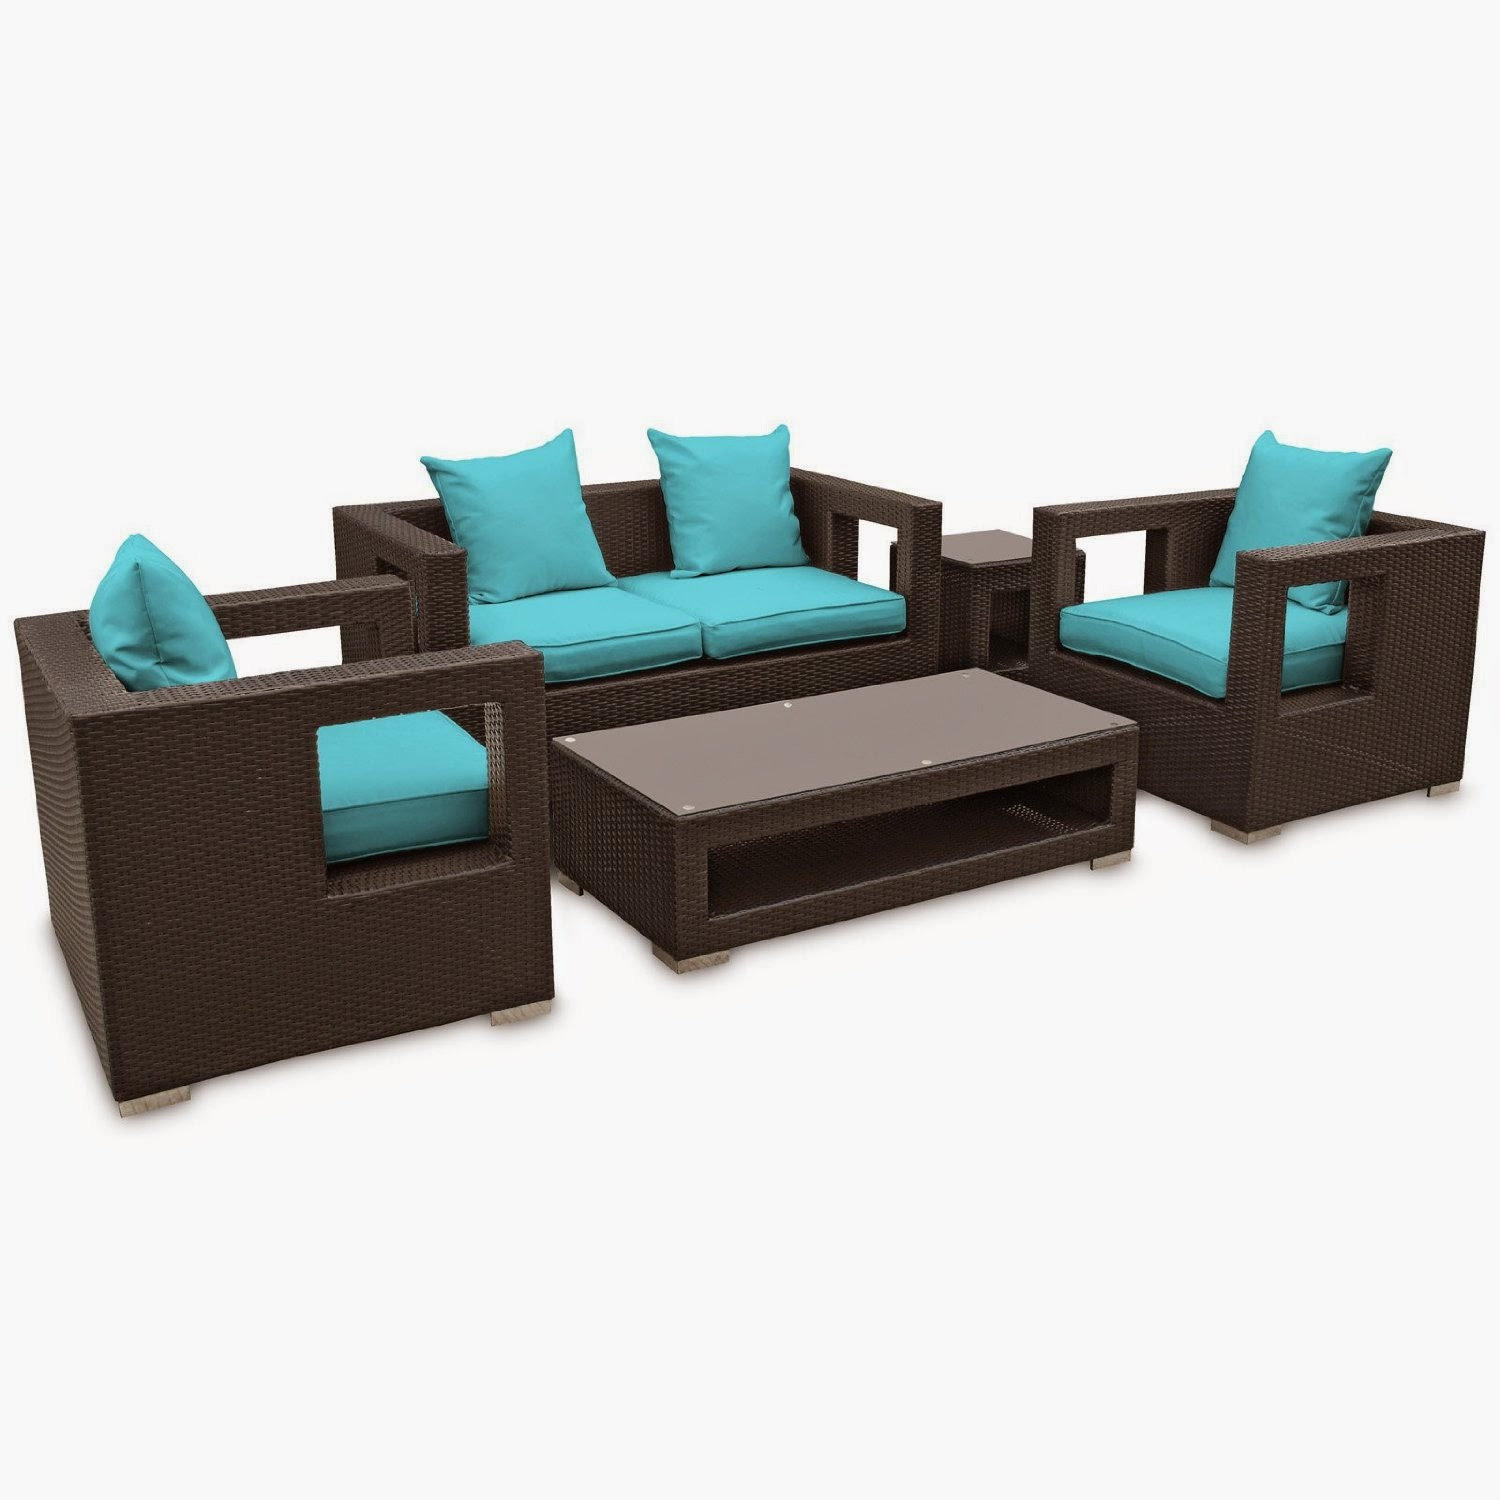 Modern Rattan Sofa Home Design Ideas and